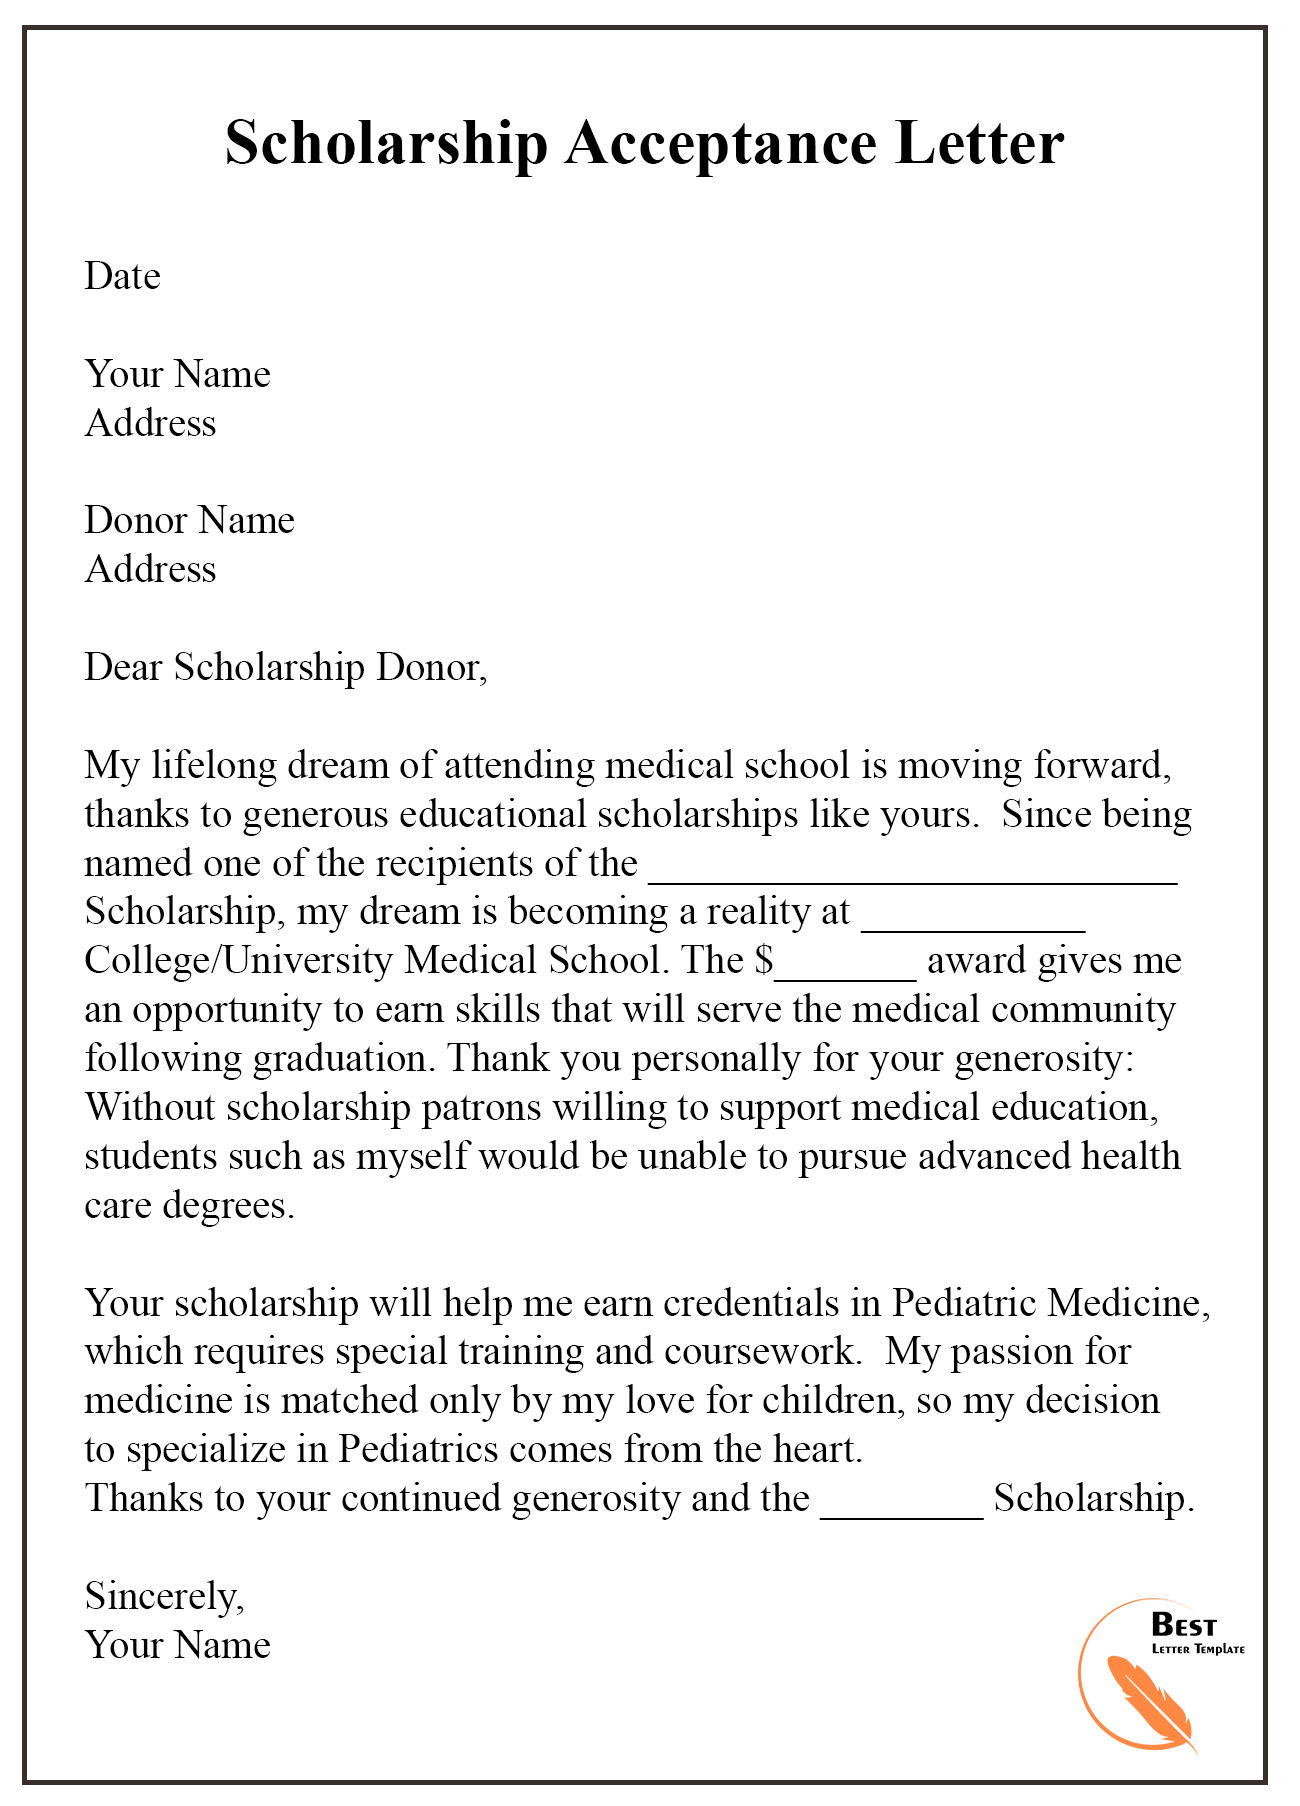 Scholarship Acceptance Letter Example